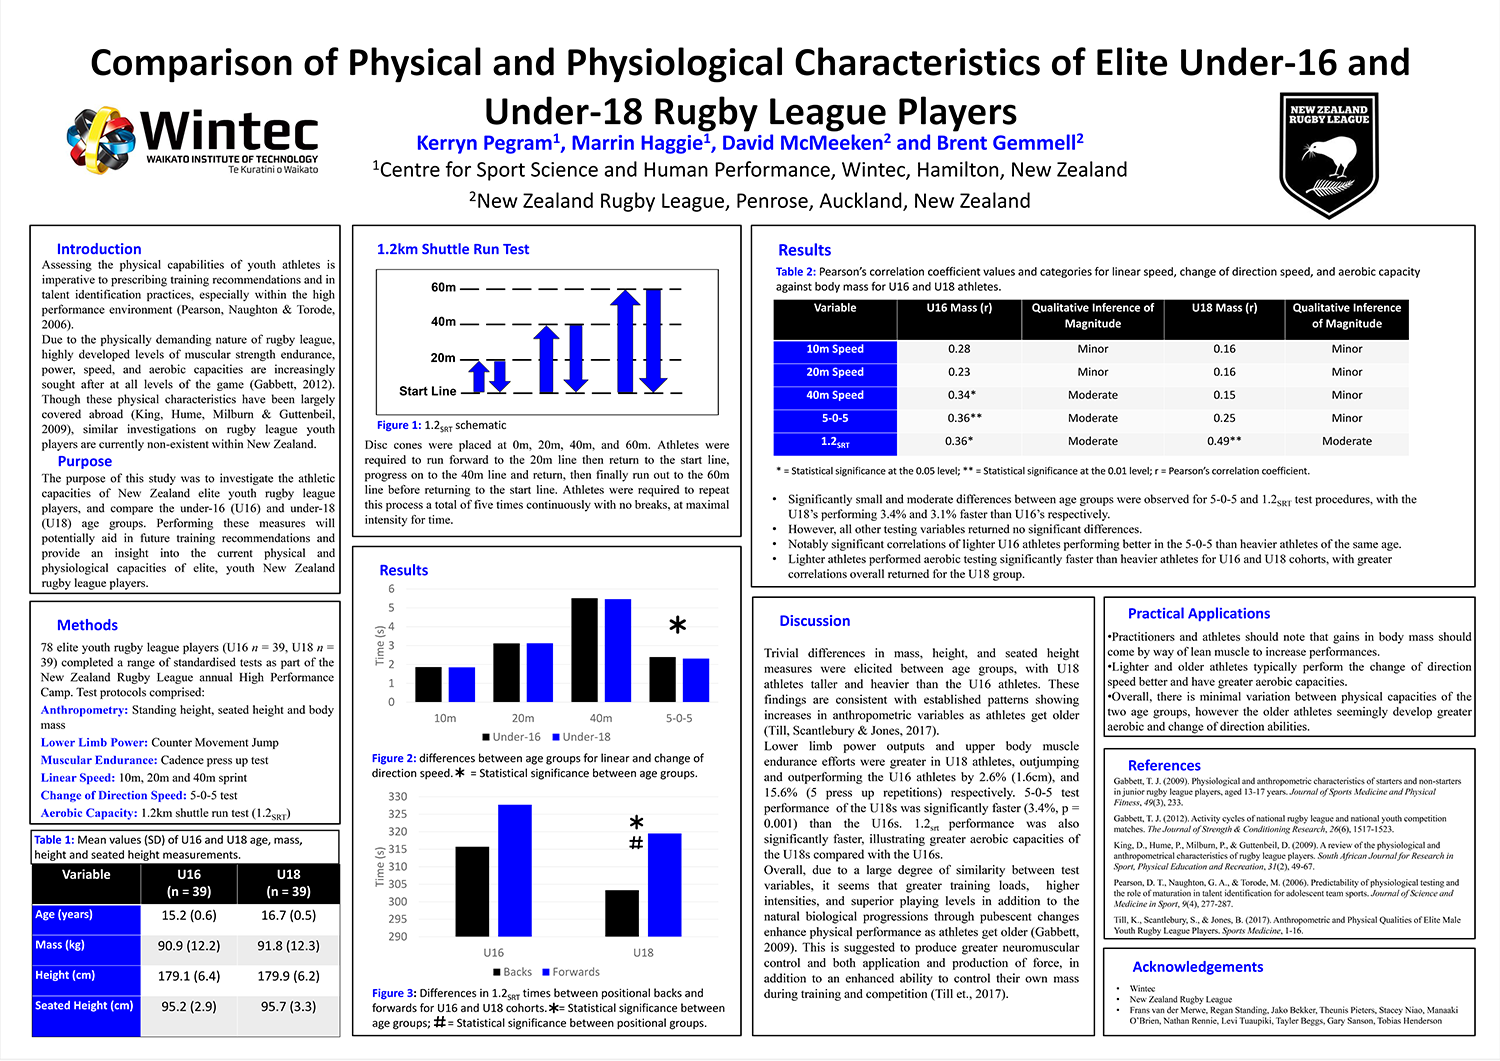 Comparison of Physical and Physiological Characteristics of Elite Under-16 and Under-18 Rugby League Players